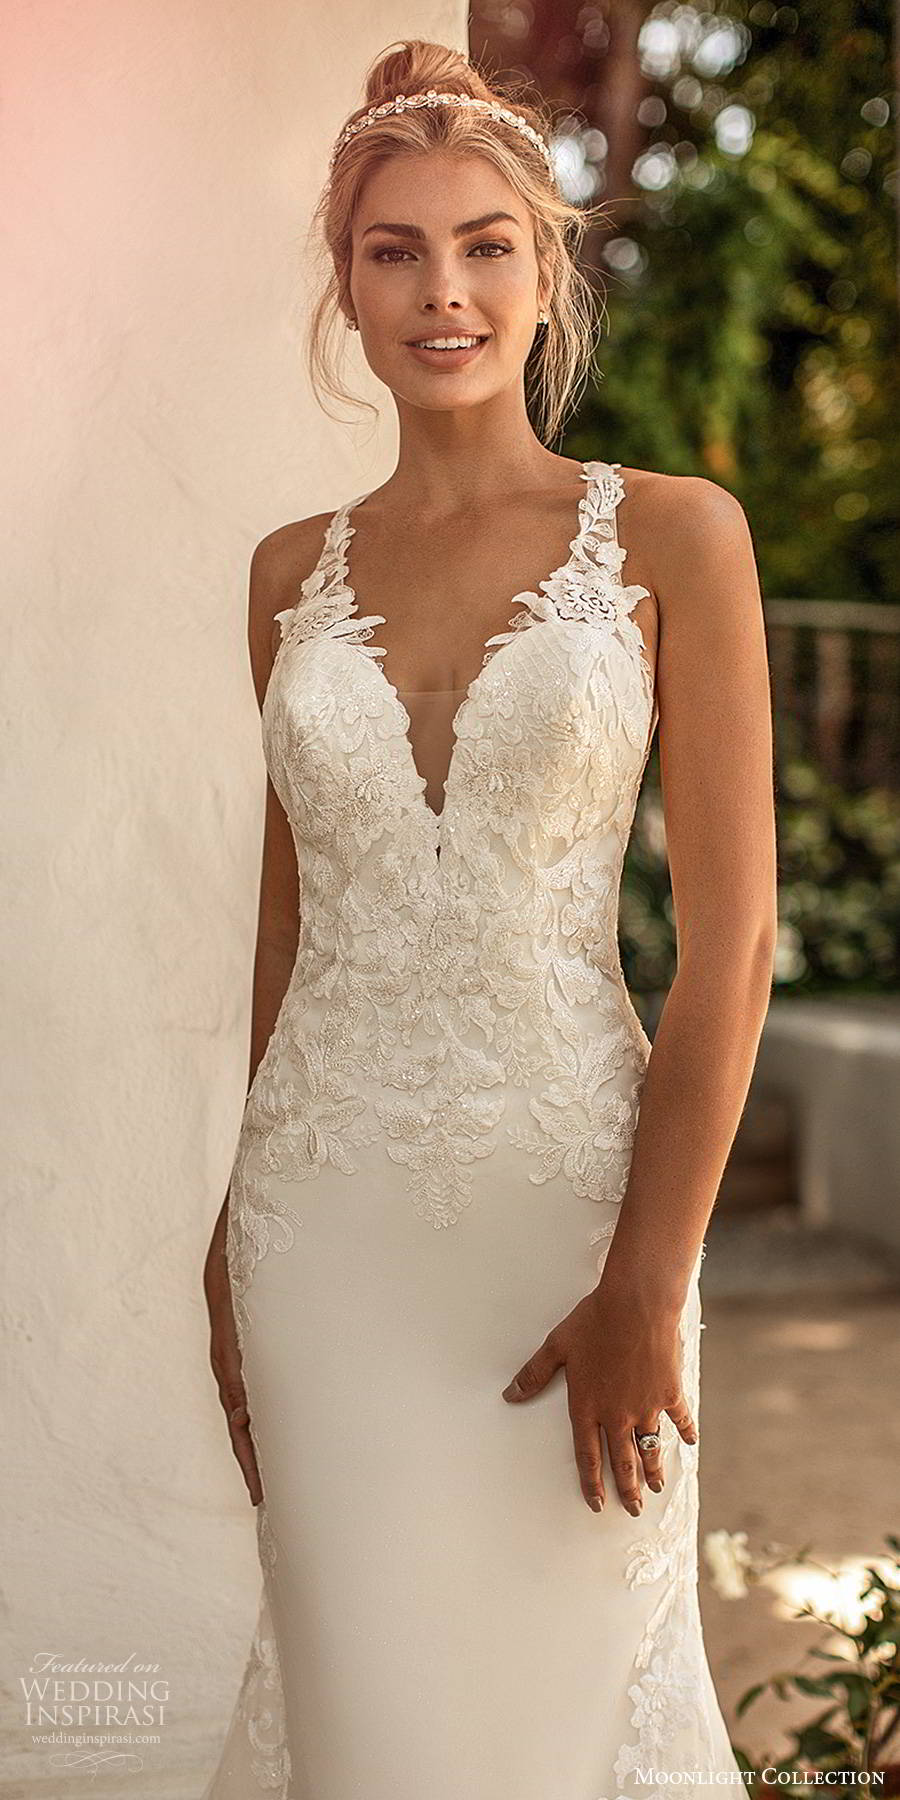 moonlight collection spring 2020 bridal sleeveless sheer straps plunging v neckline embellished bodice elegant sexy sheath fit flare wedding dress cutout back chapel train (11) zv